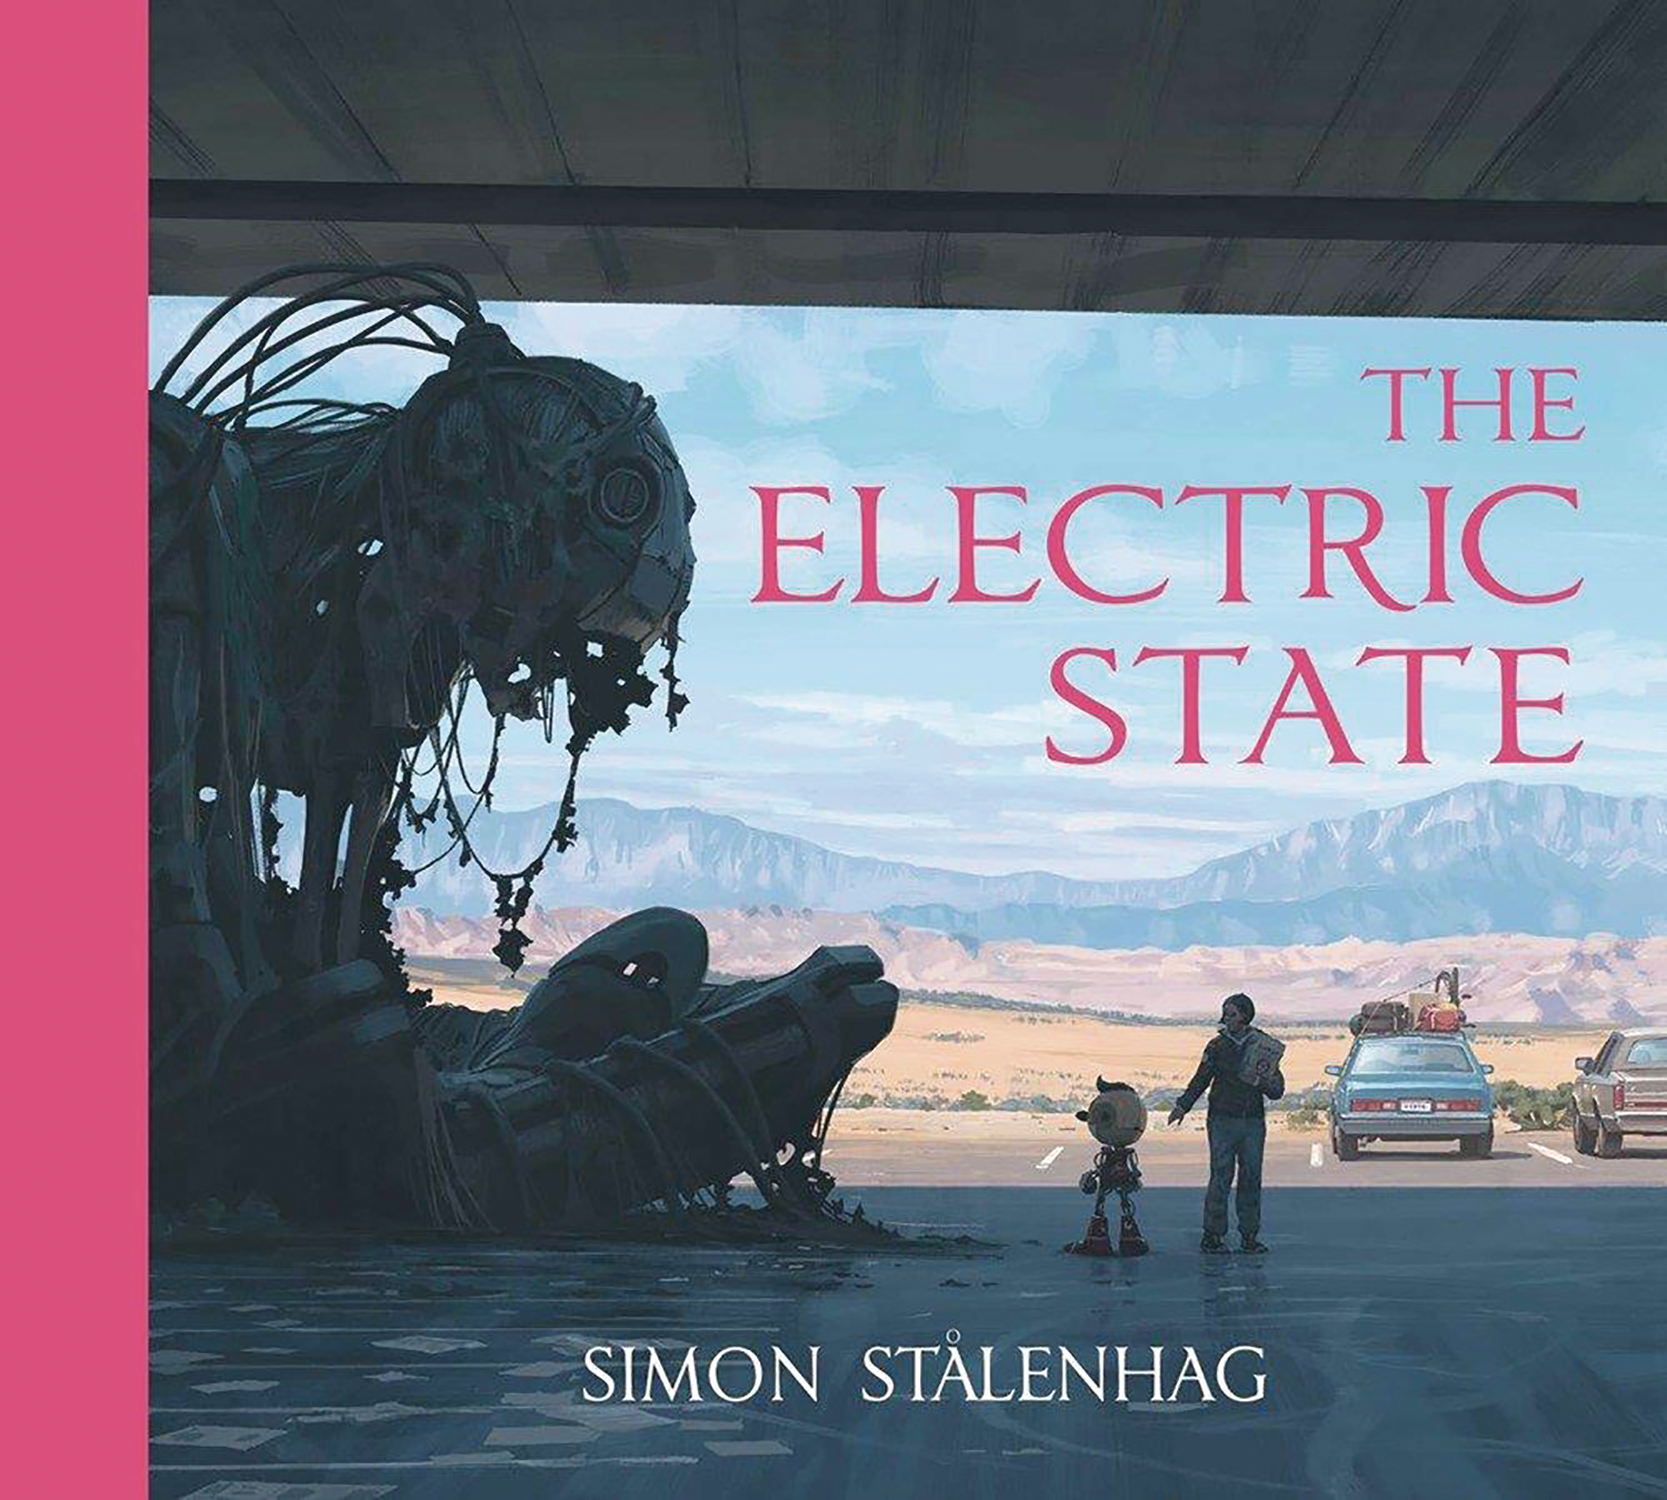 ELECTRIC STATE HC by Simon Stalenhag